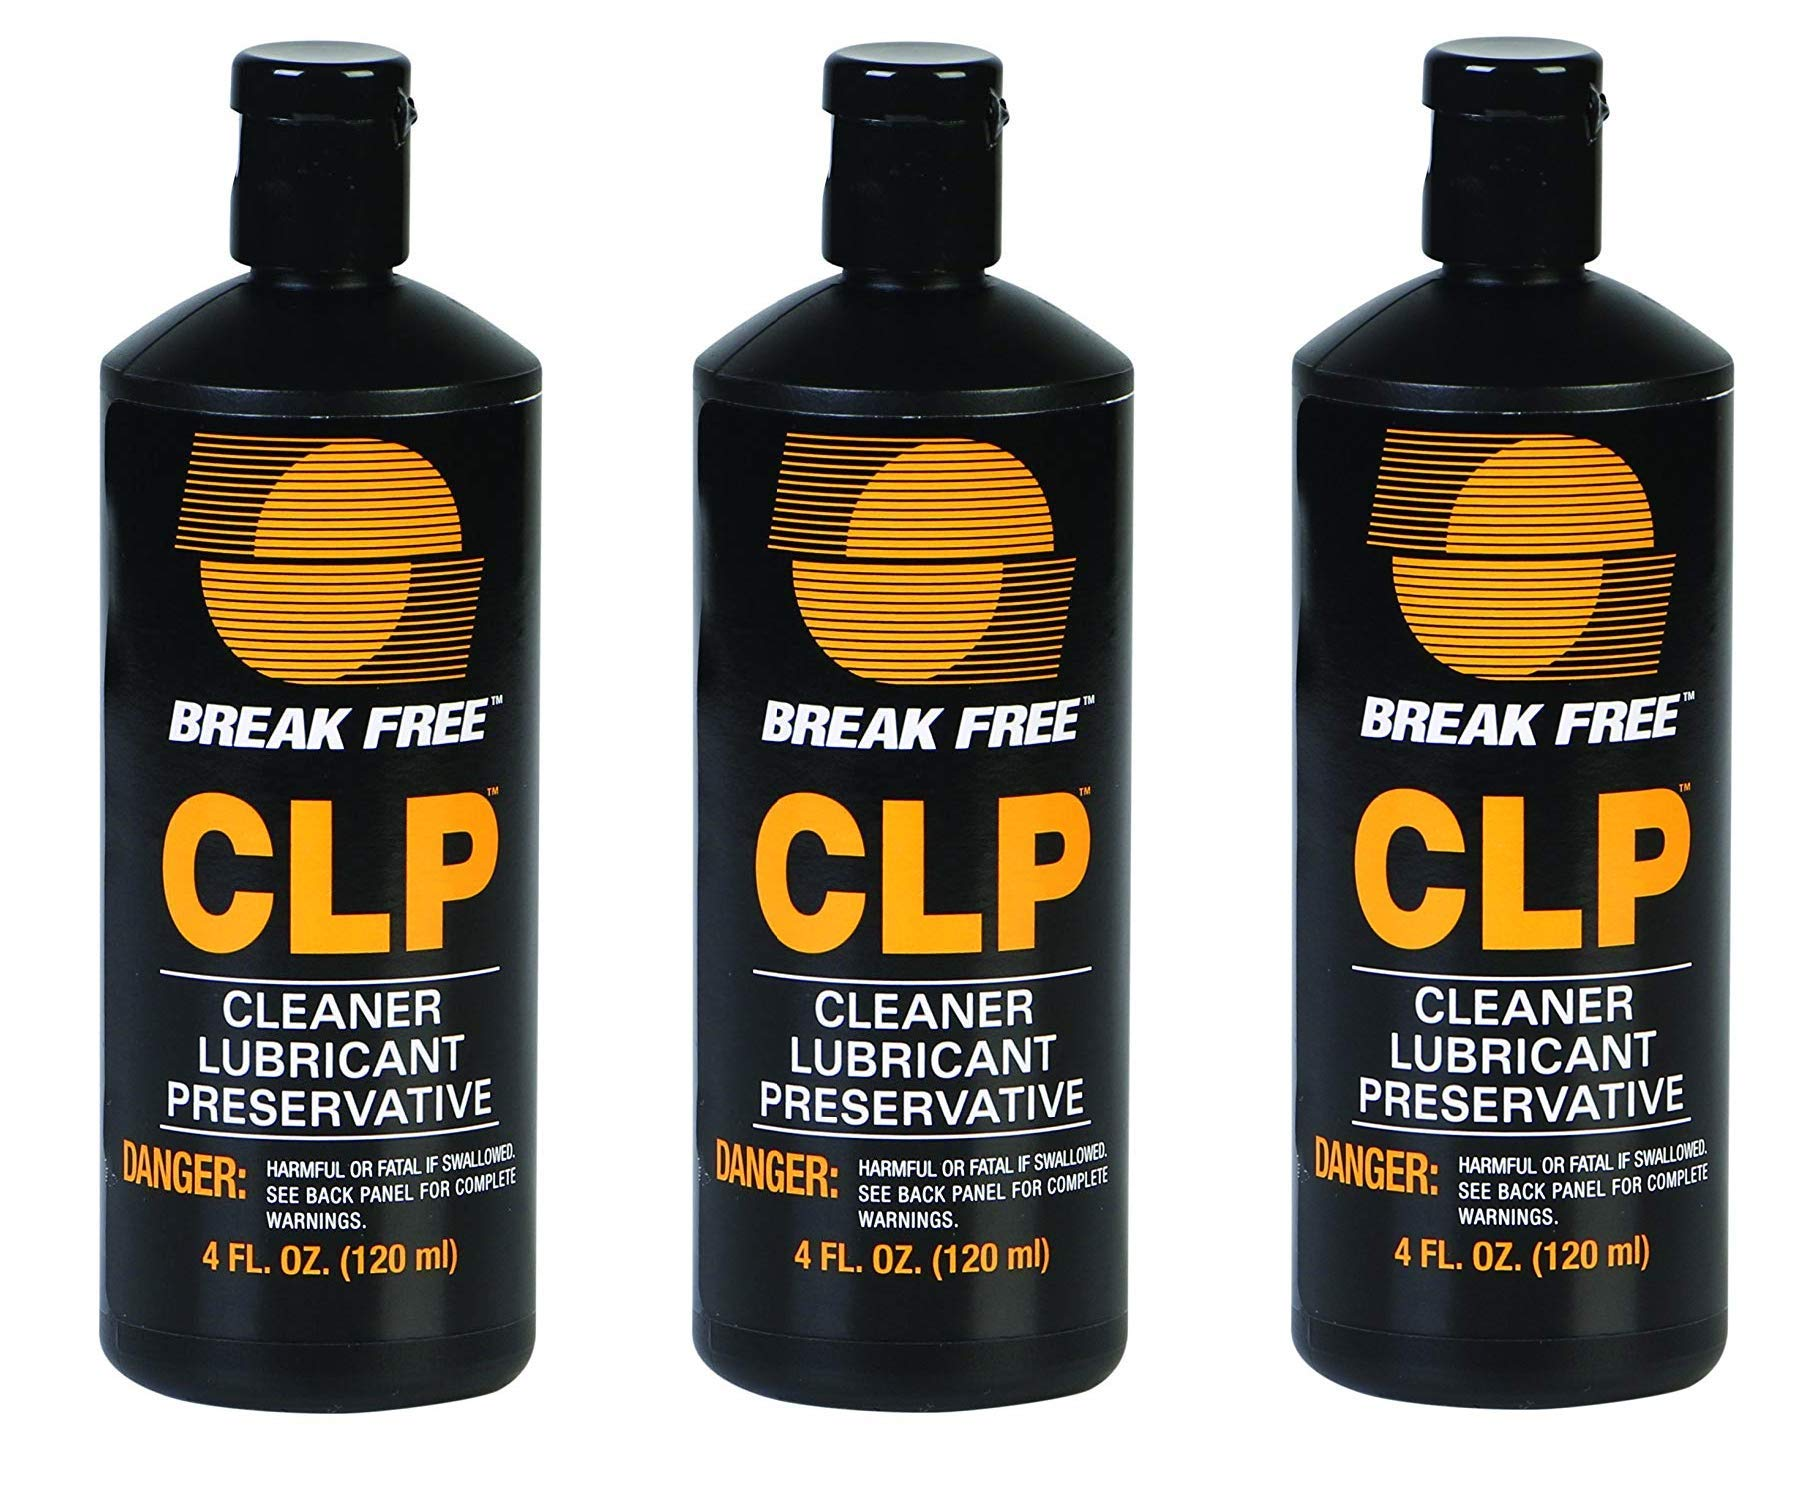 BreakFree CLP-4 Cleaner Lubricant Preservative Squeeze Bottle (4 -Fluid Ounce) (Тhrее Pаck)